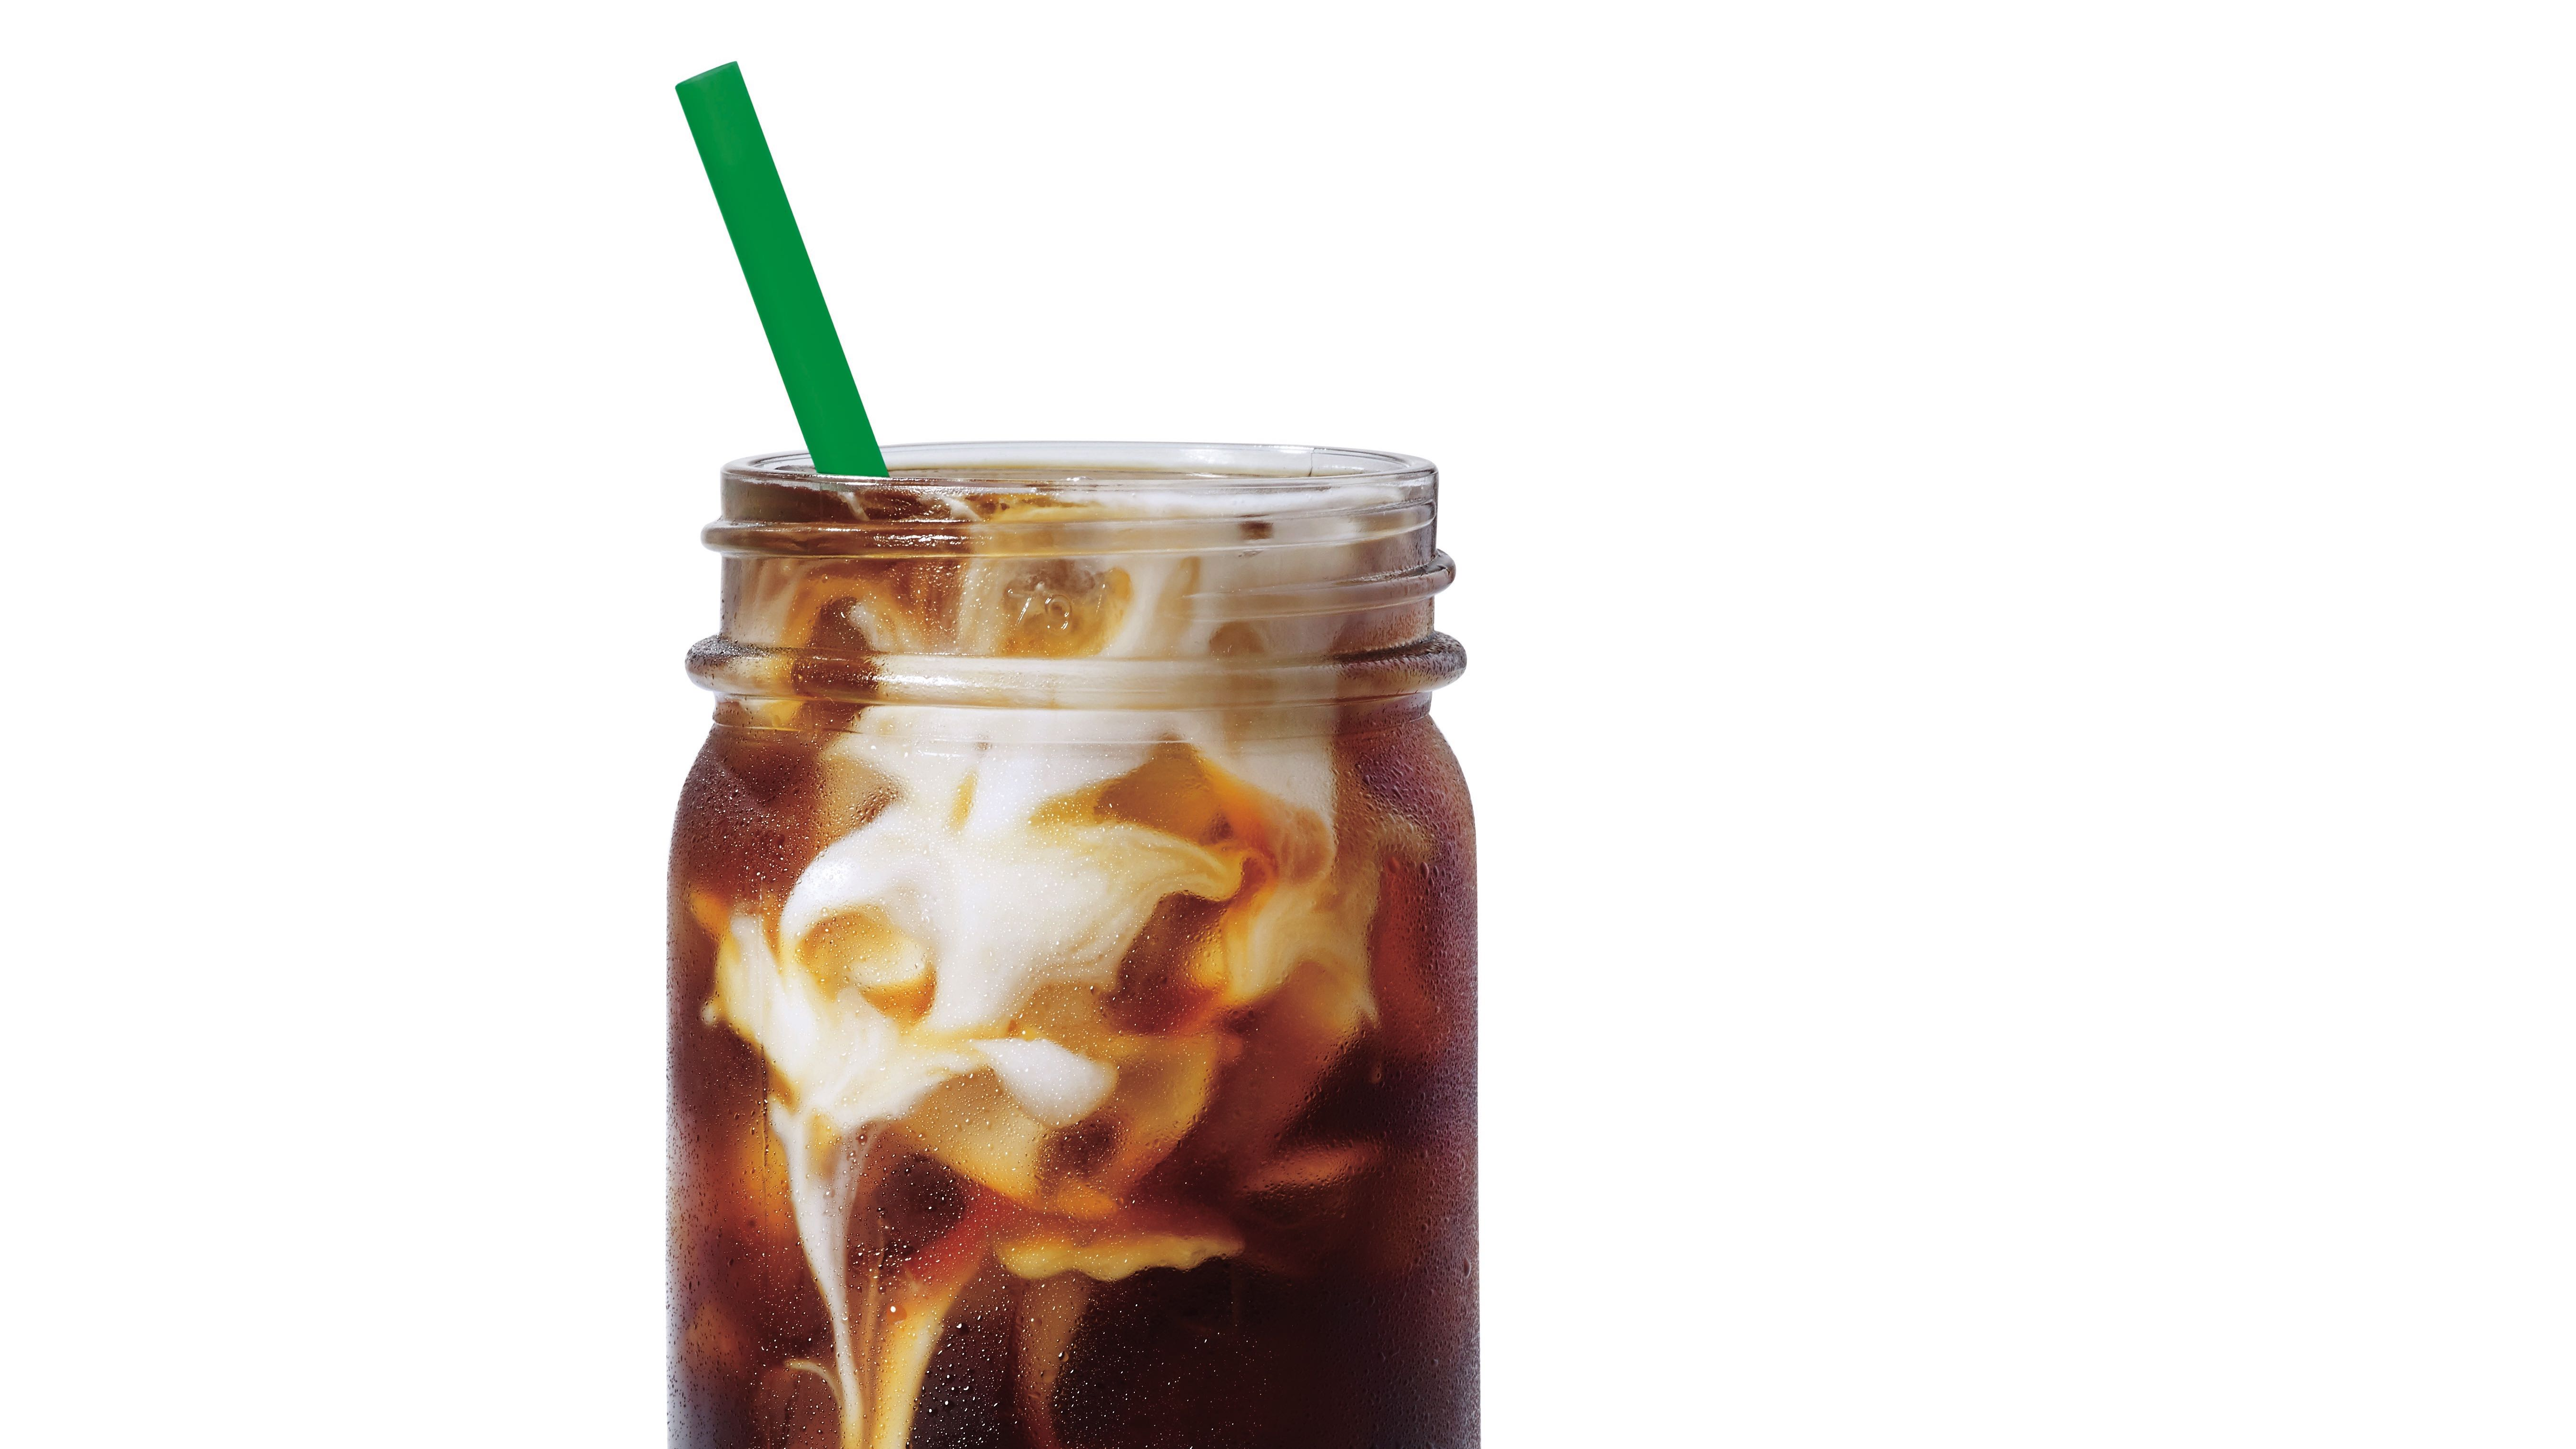 Combine coffee, sugar, milk and chocolate syrup. Add Ice cubes, top with whipped cream and cookie crumbs. You can make this Copycat Starbucks Iced Mocha at home for about 50c per cup (depending on the price of your coffee grounds).